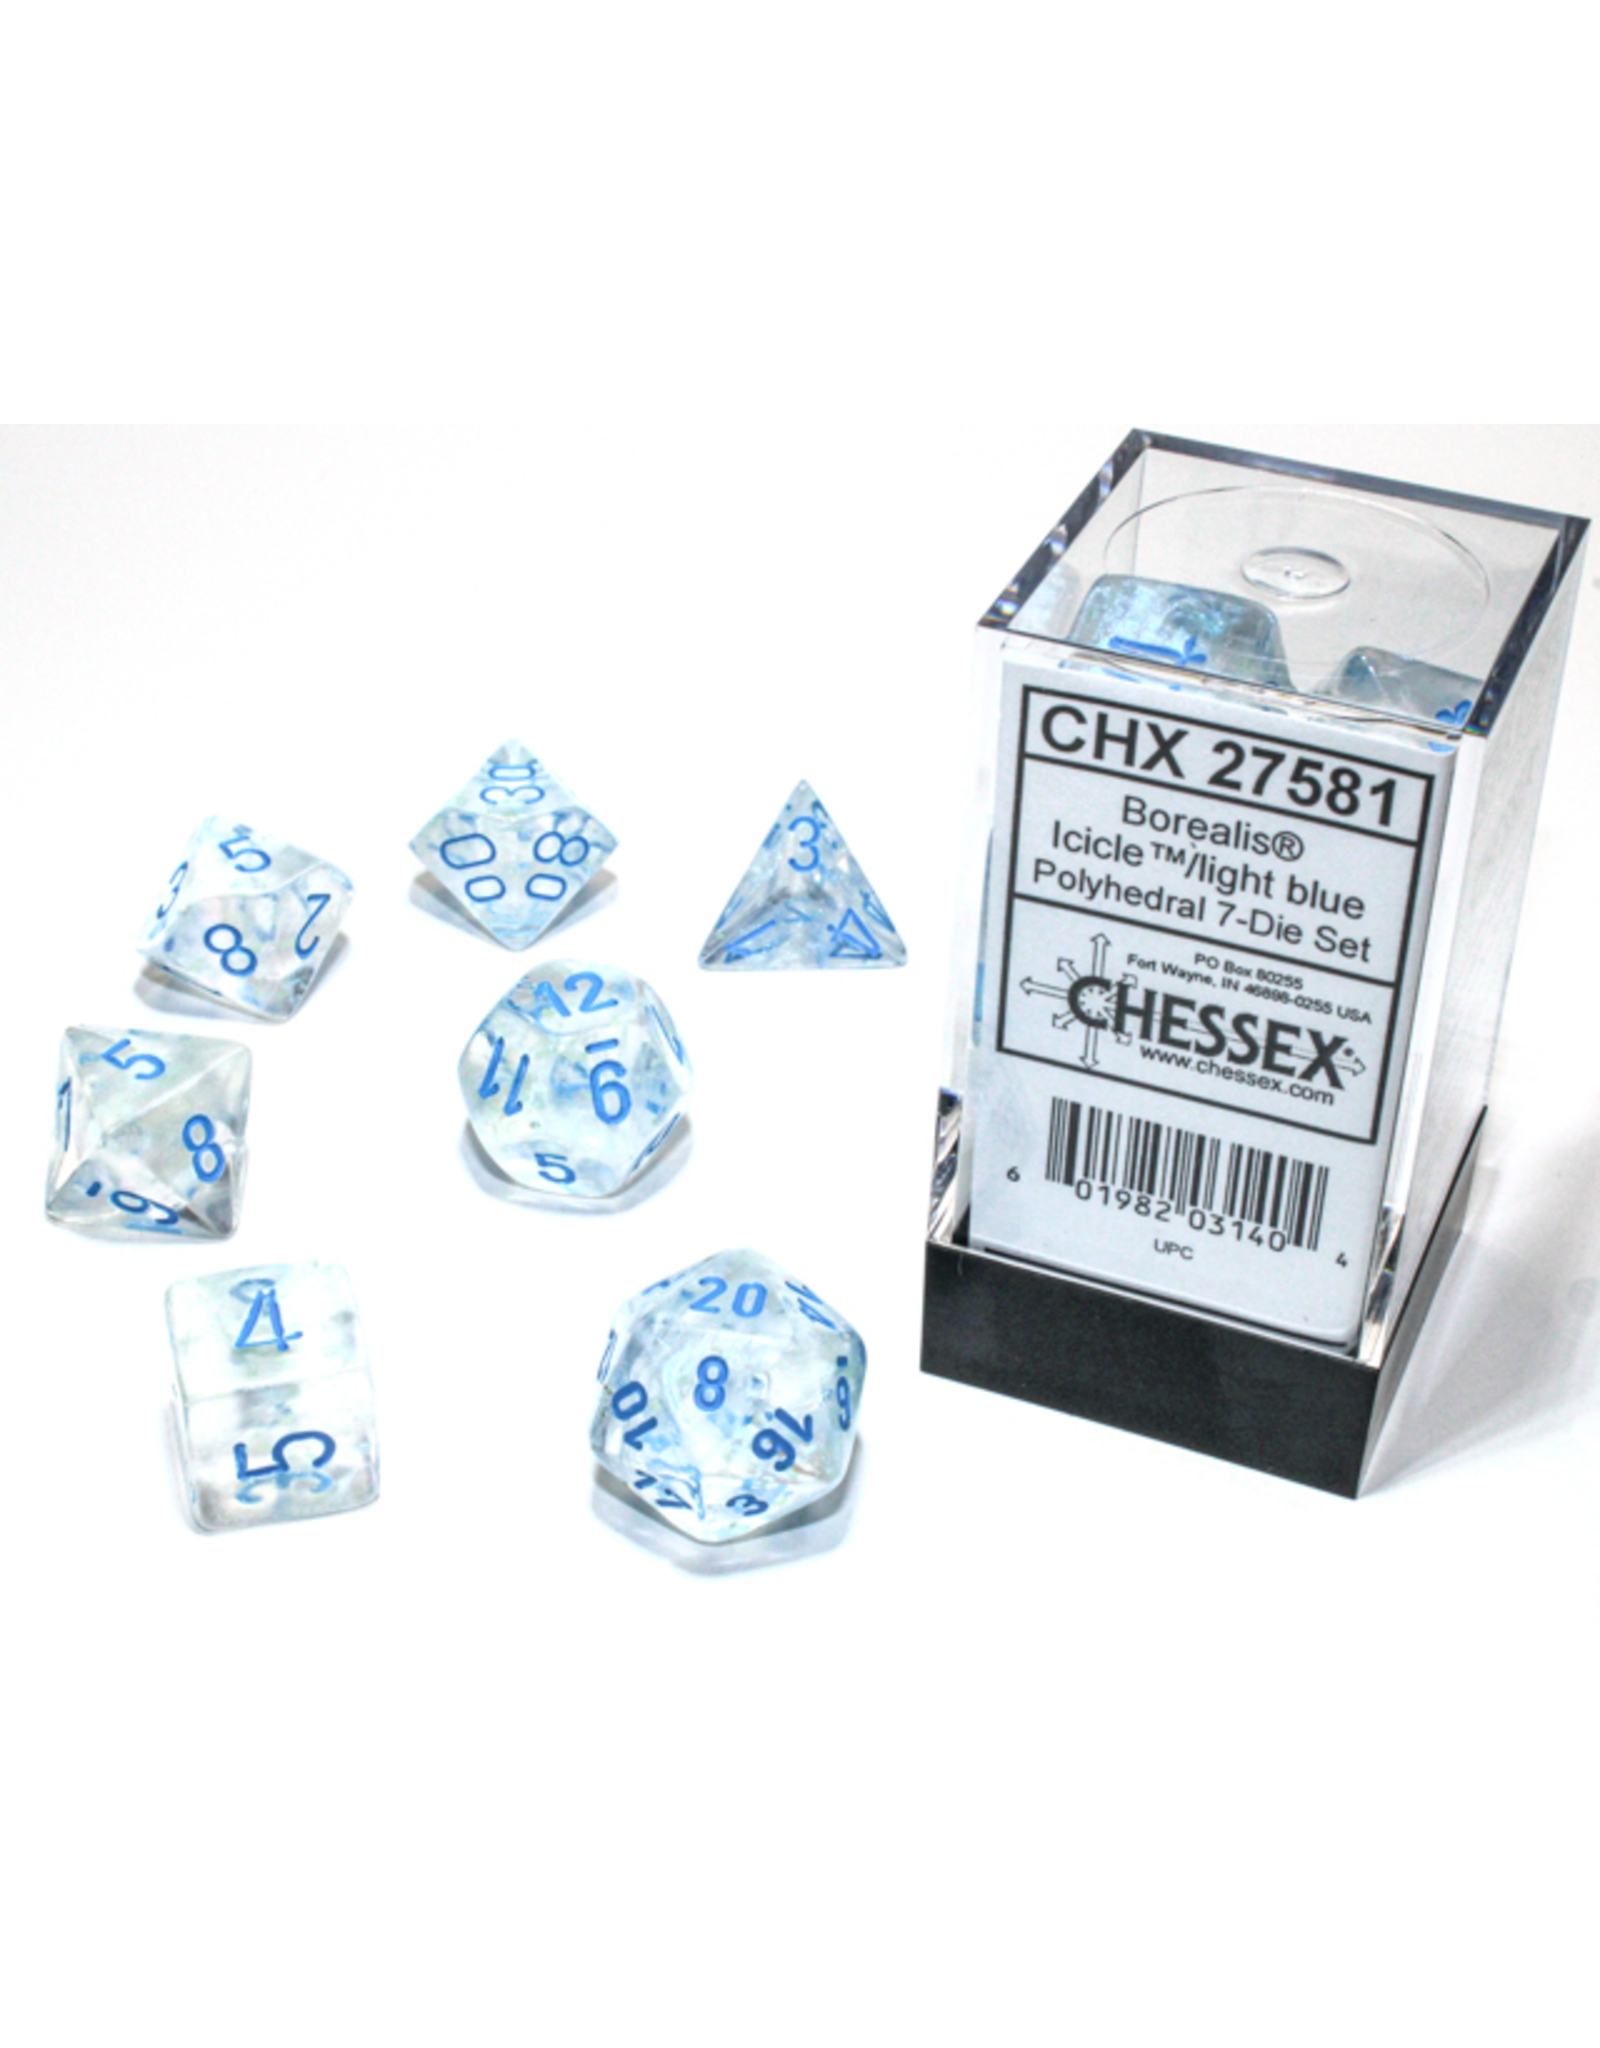 Chessex Dice: 7-Set Borealis Luminary Icicle with Light Blue Numbers (CHX)